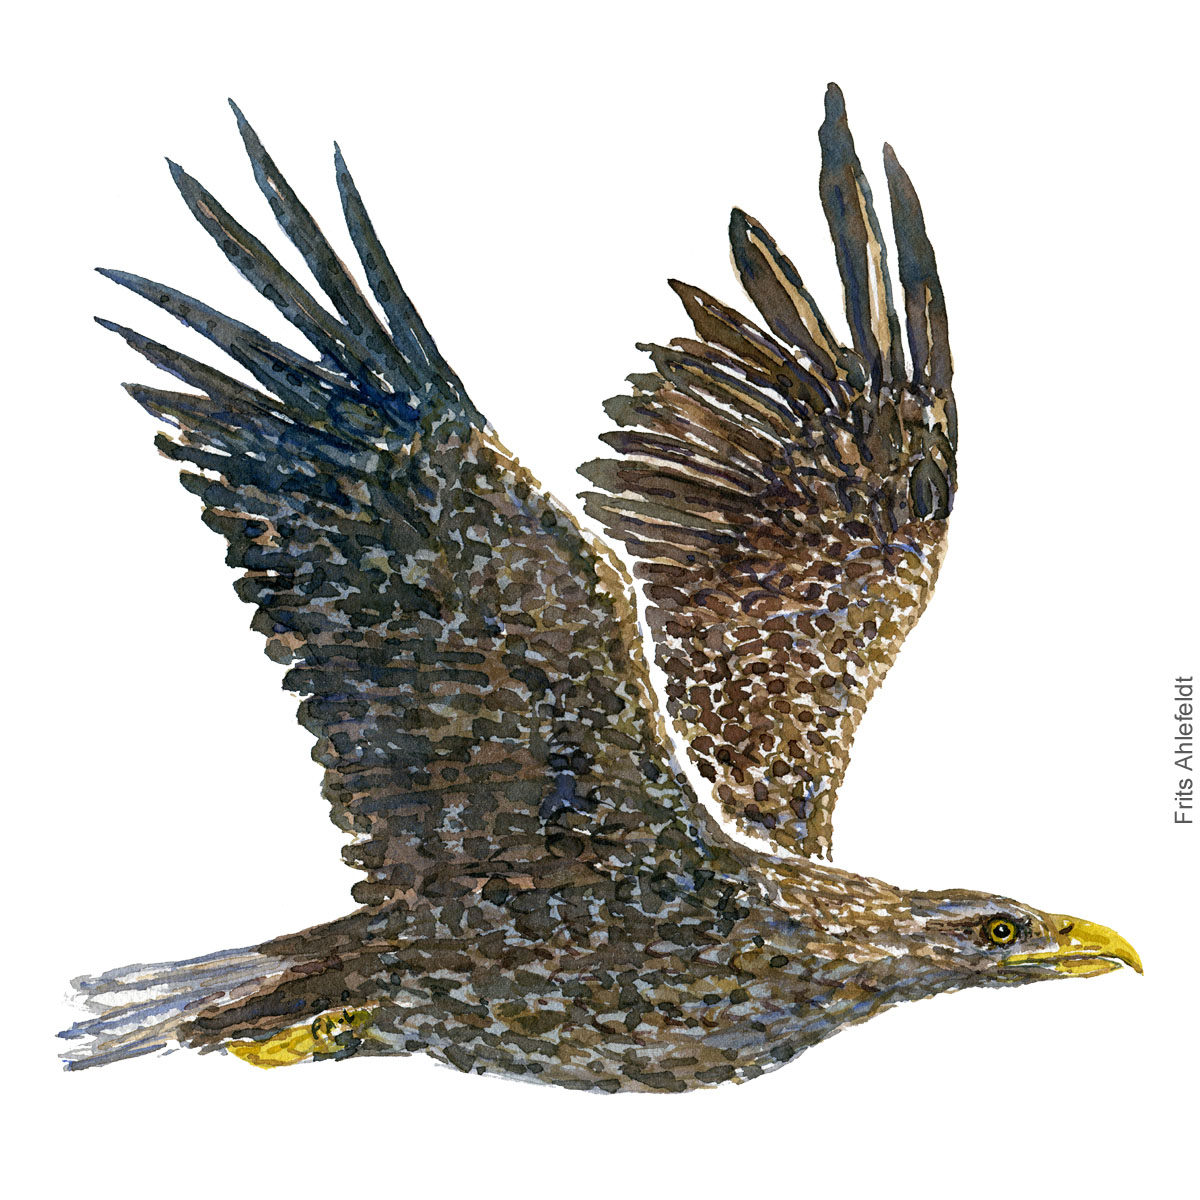 Flyvende havoern - Flying white-tailed eagle - Bird painting in watercolor by Frits Ahlefeldt - Fugle akvarel